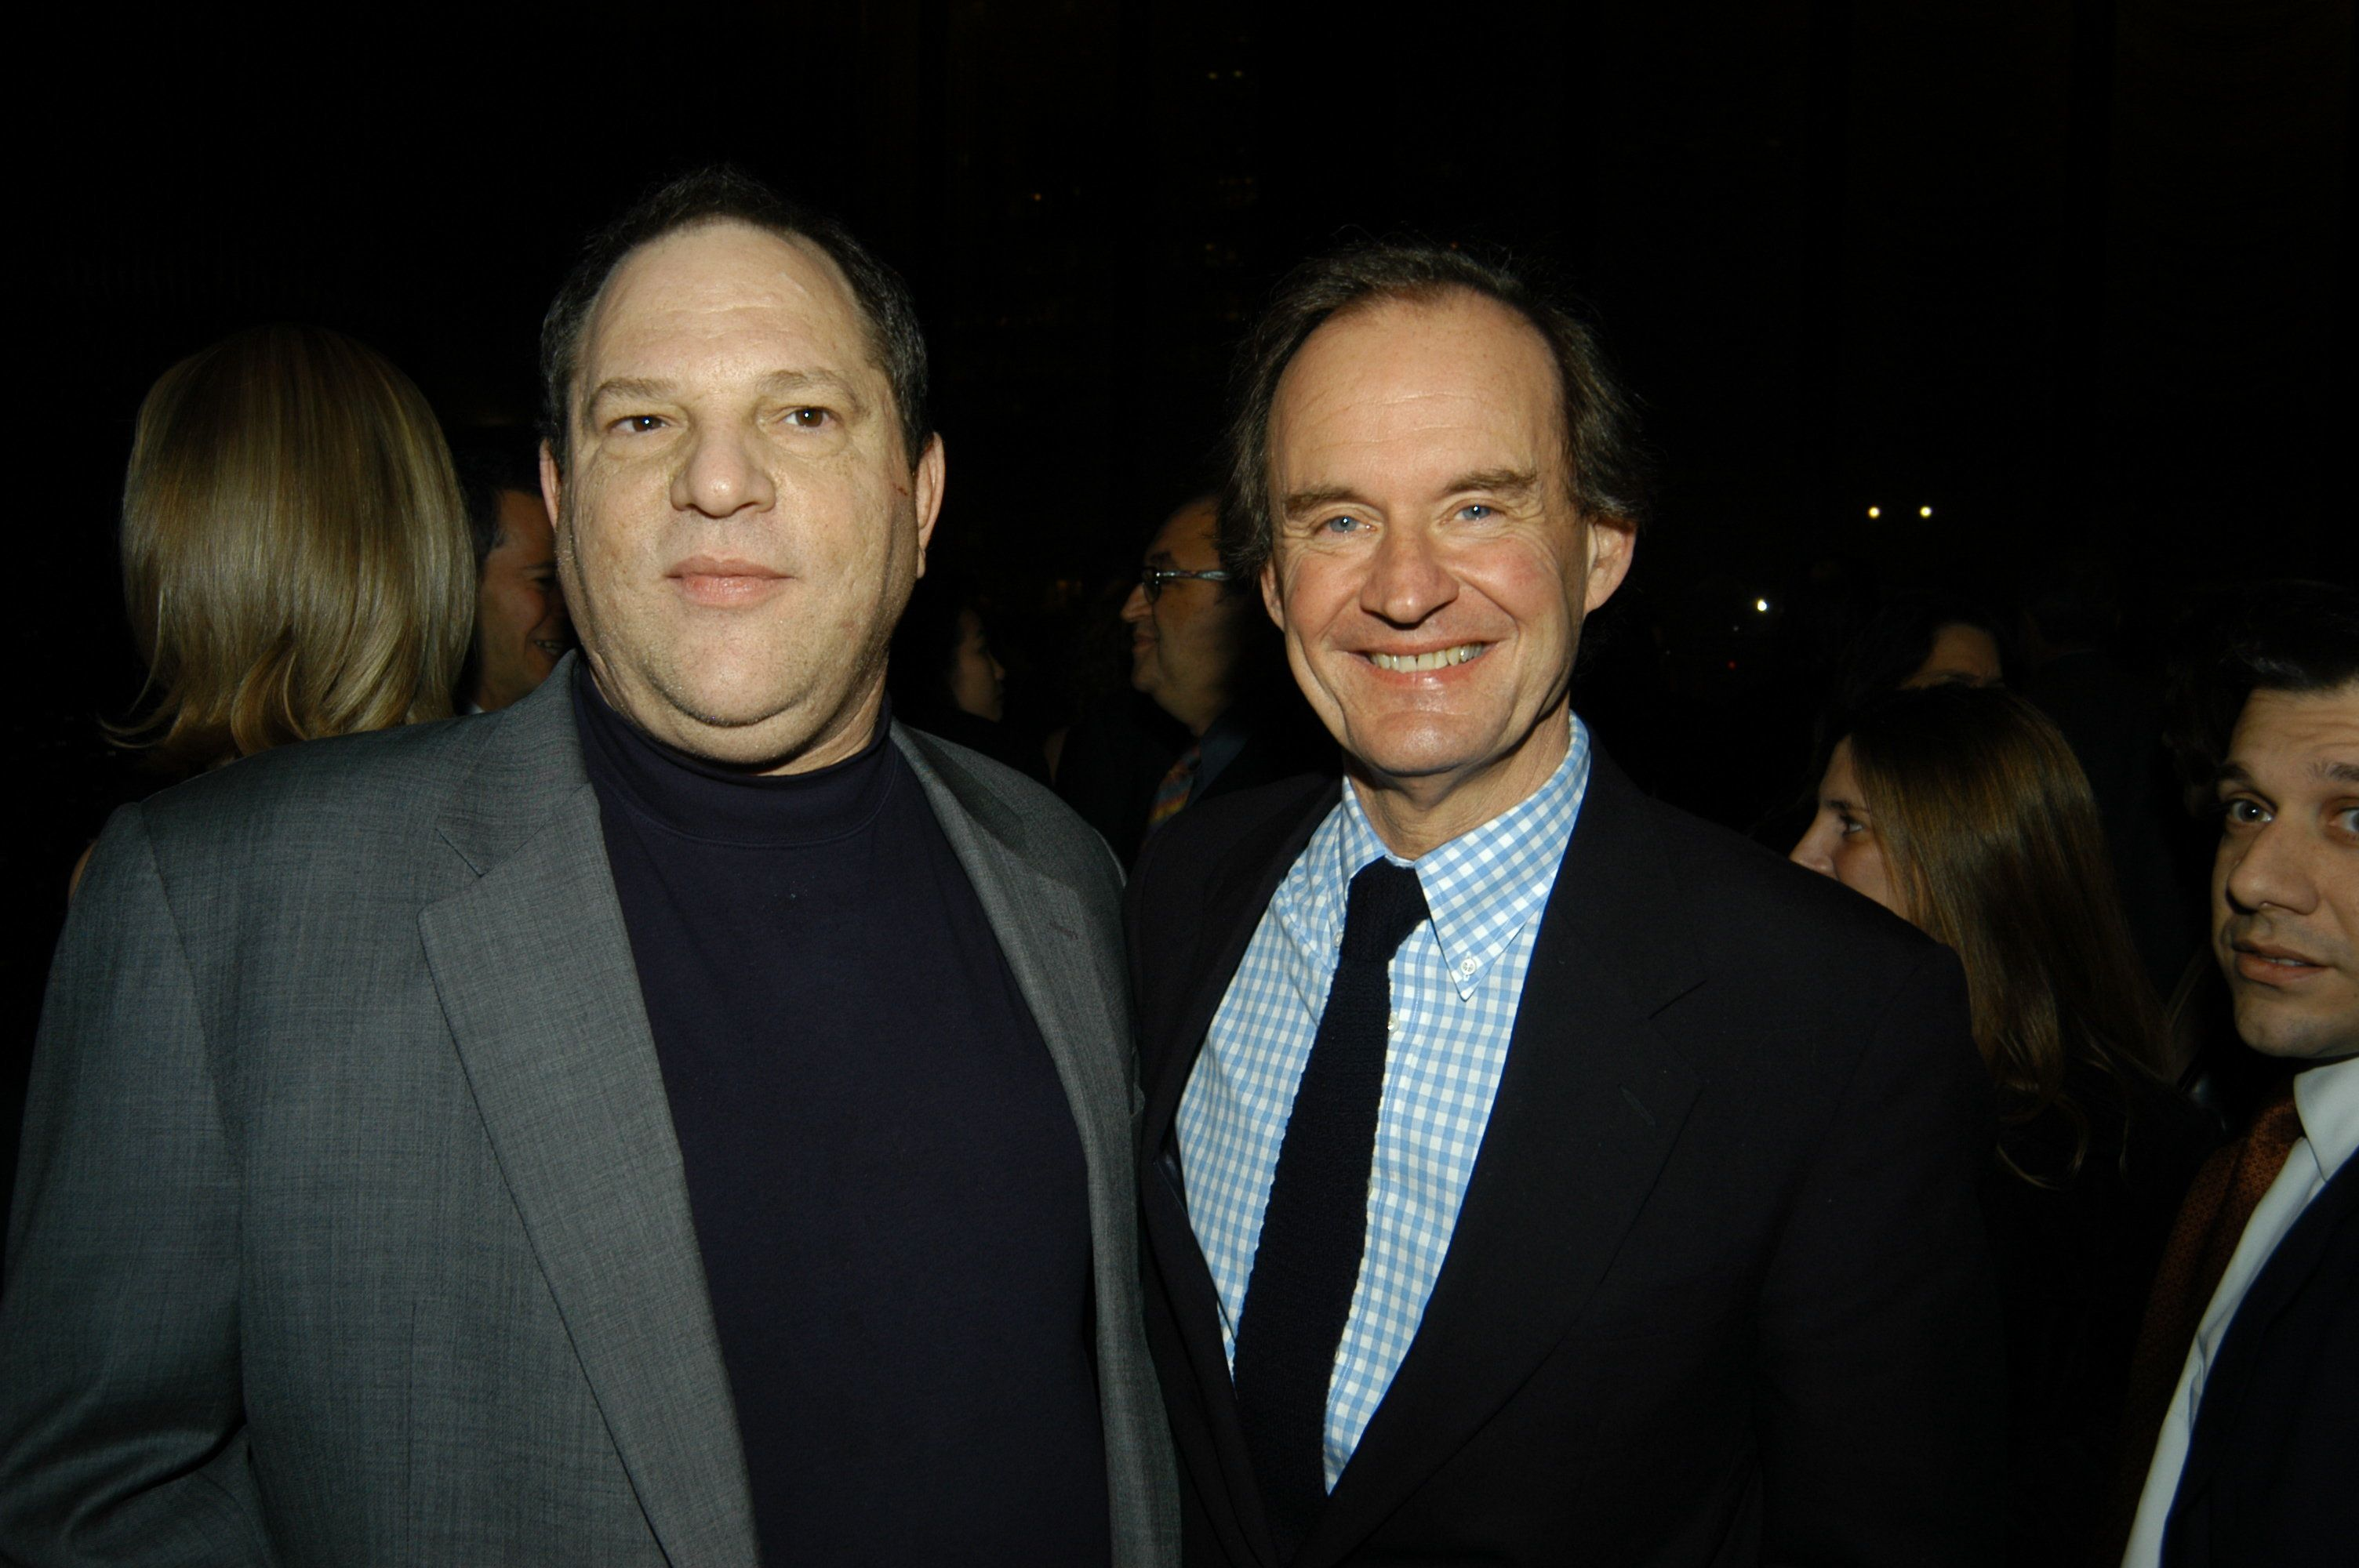 NEW YORK, NY - DECEMBER 18: Harvey Weinstein and David Boies attend Miramax Books Party for Rudolph Giuliani and his newest book 'Leadership' at Four Seasons Hotel on December 18, 2002 in New York City. (Photo by Patrick McMullan/Patrick McMullan via Getty Images)